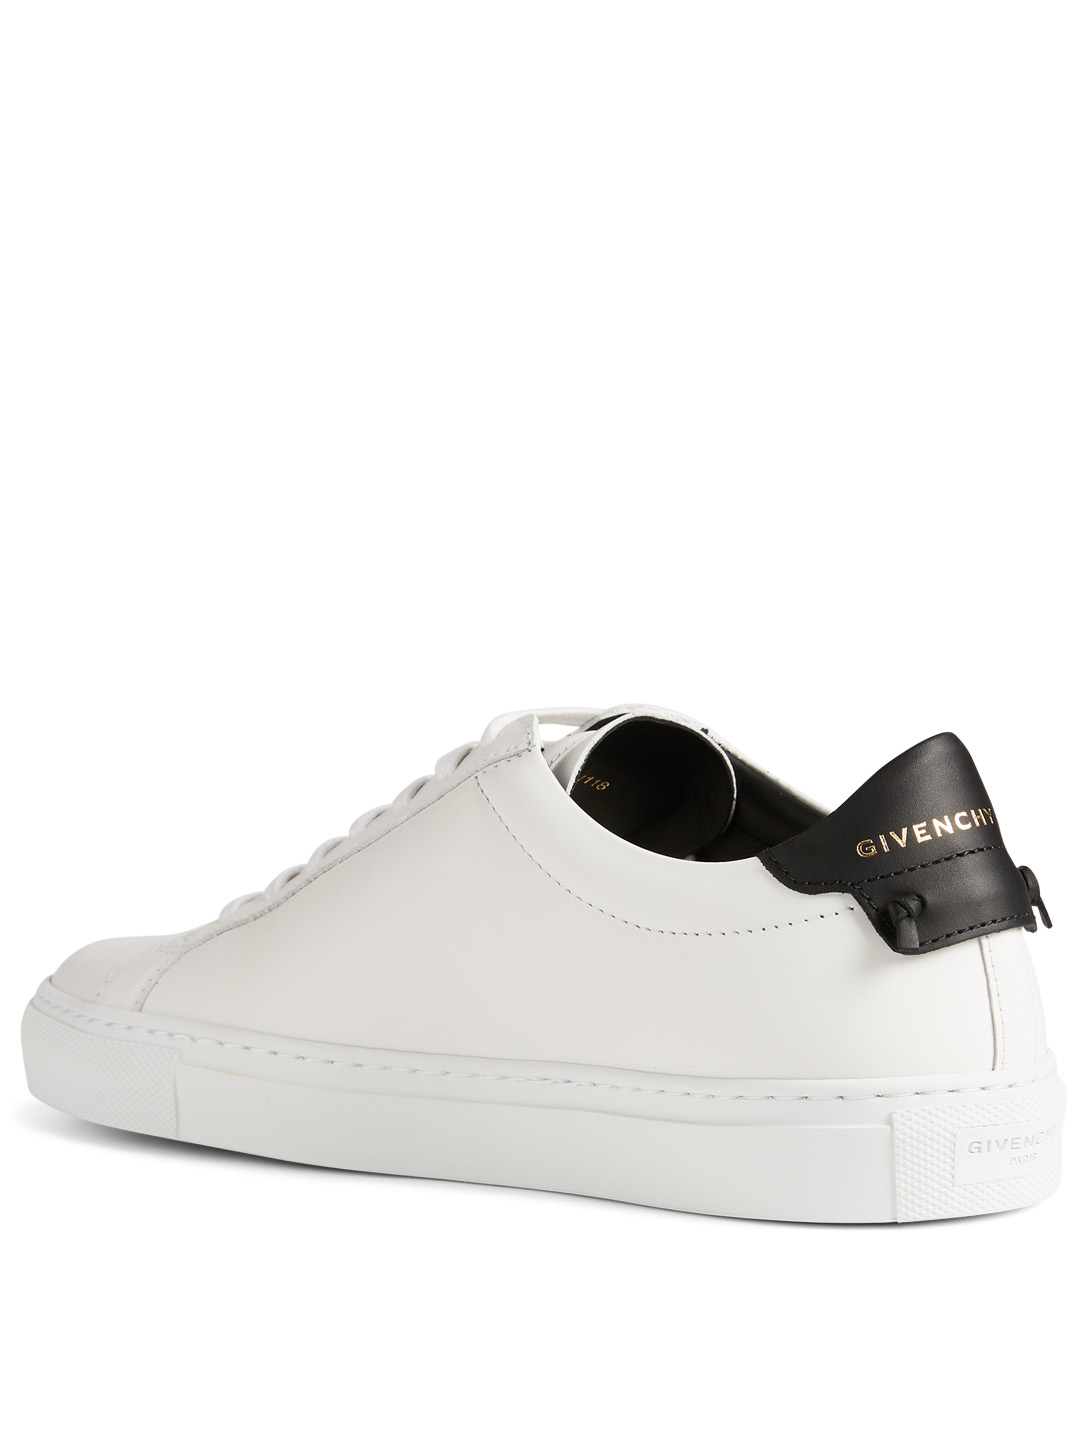 9d86394c1 ... GIVENCHY Urban Street Perforated Leather Sneakers Women's White ...